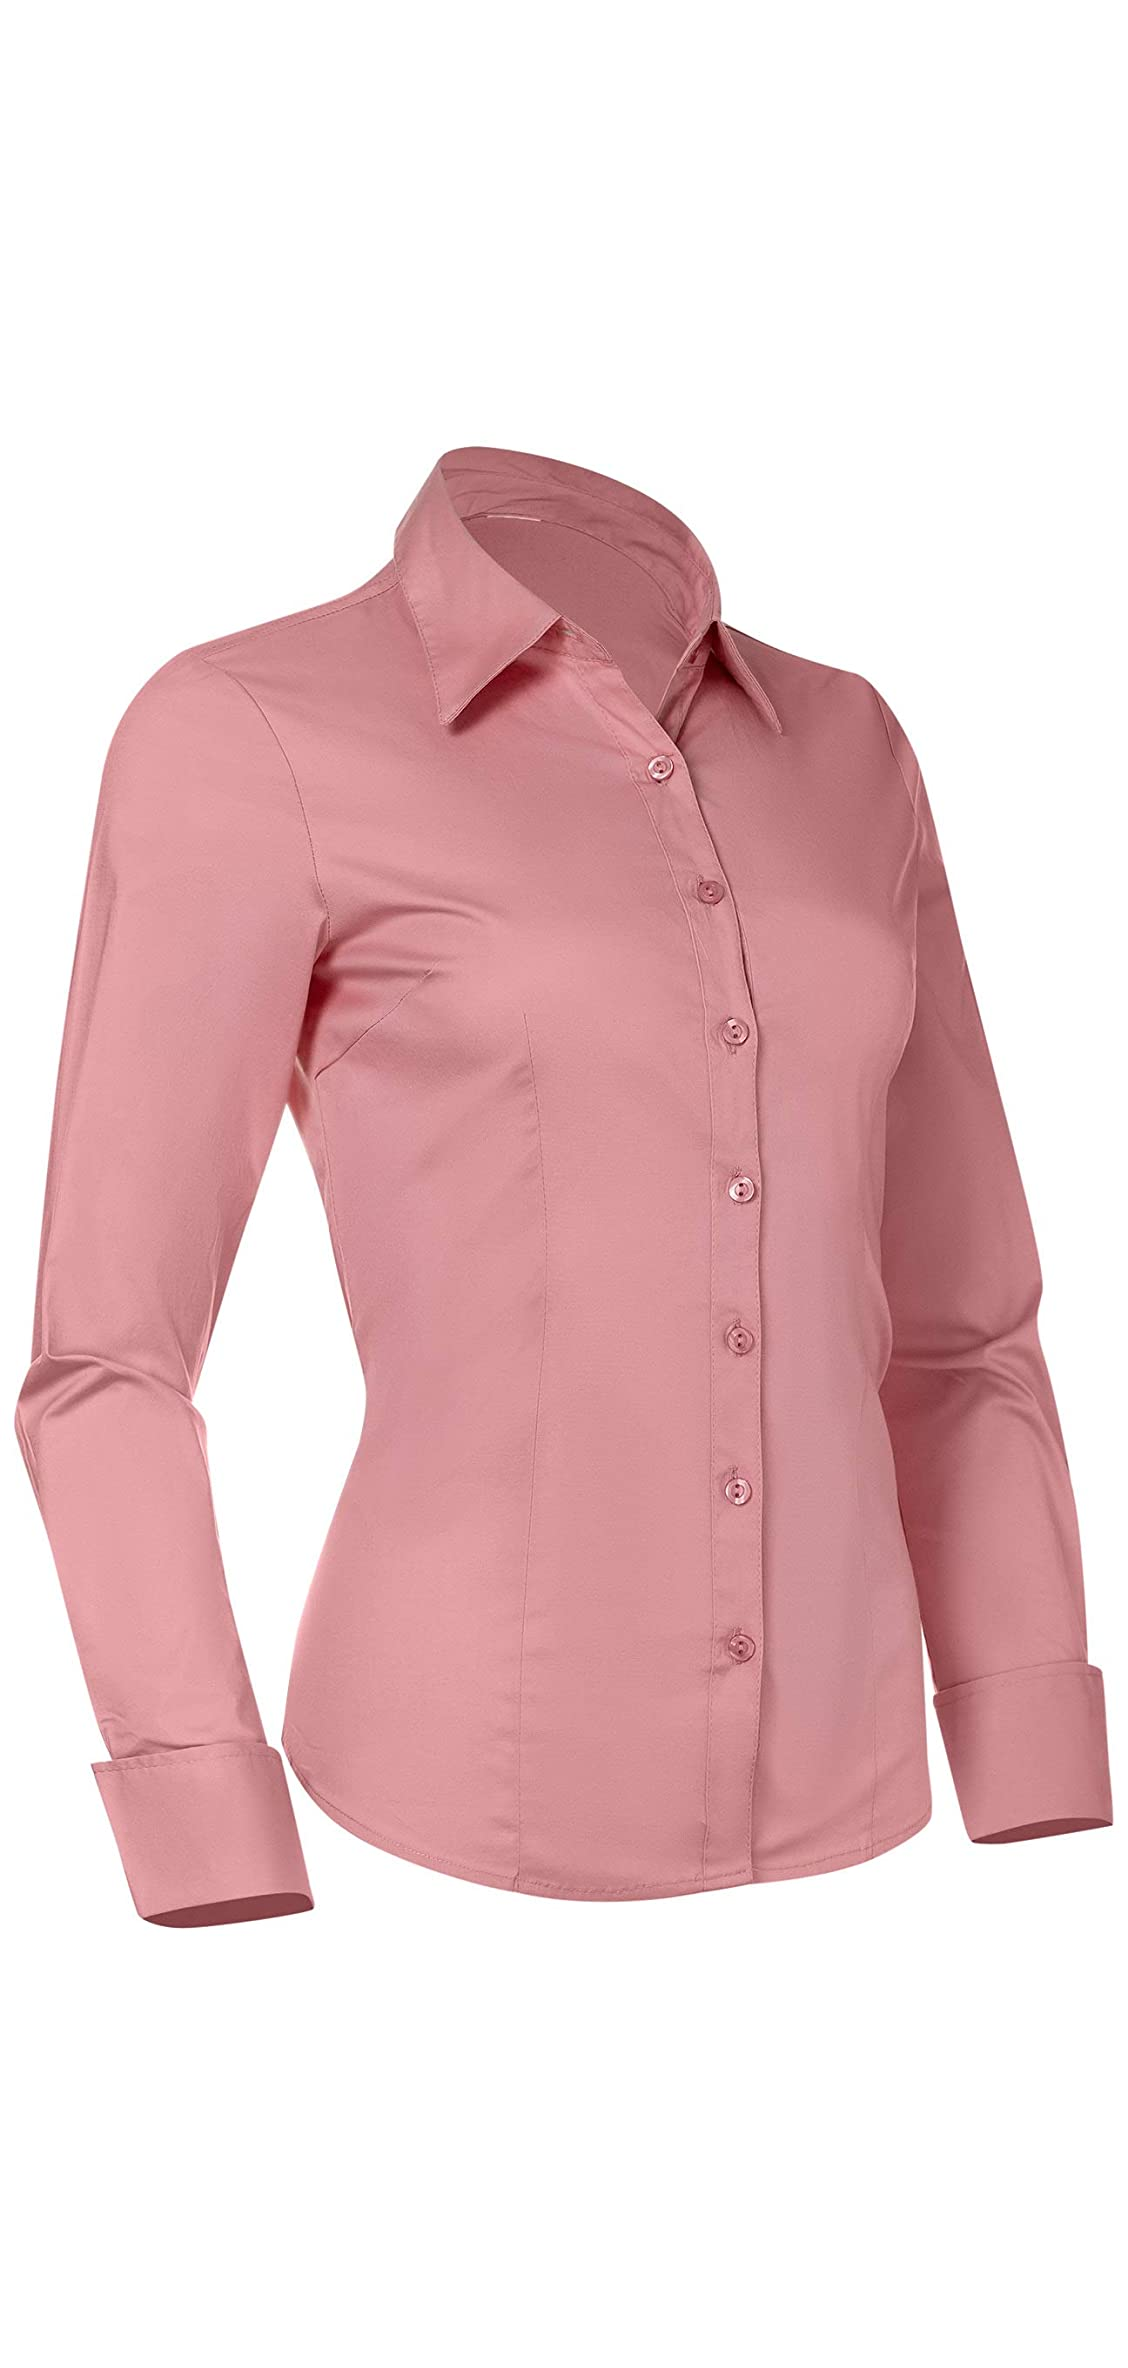 Button Down Shirts For Women, Fitted Long Sleeve Work